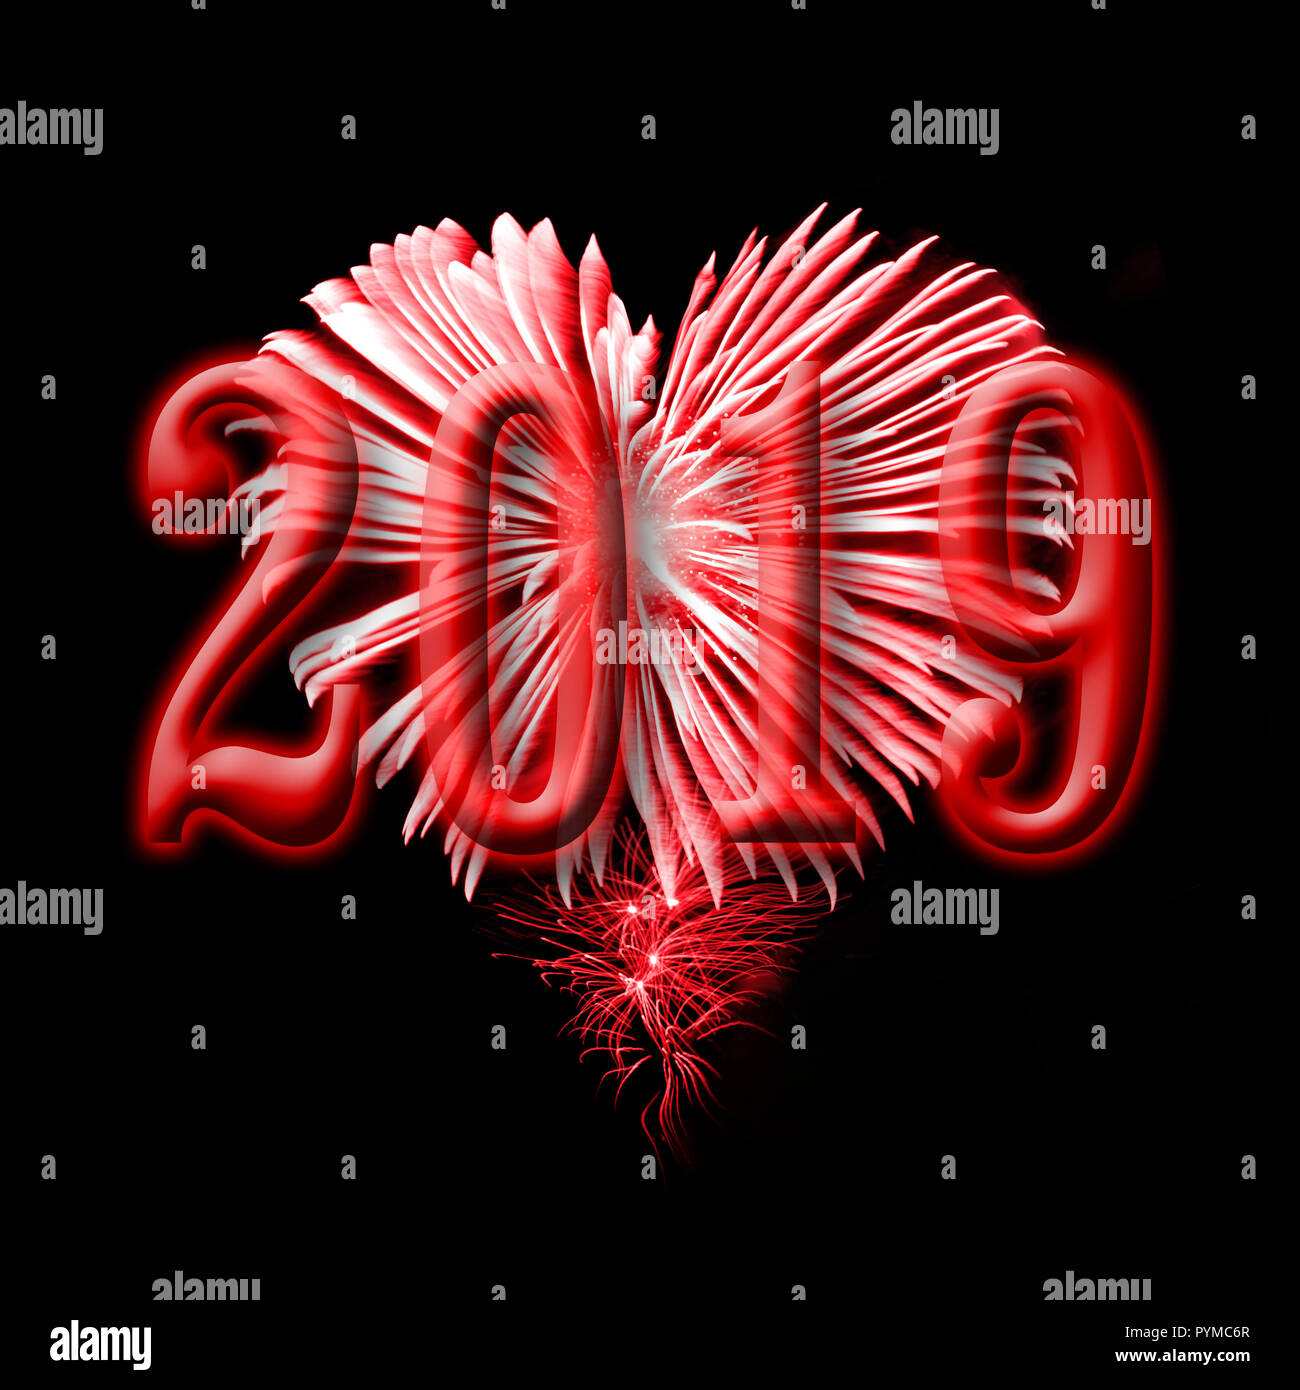 2016, red fireworks in the shape of a heart Stock Photo